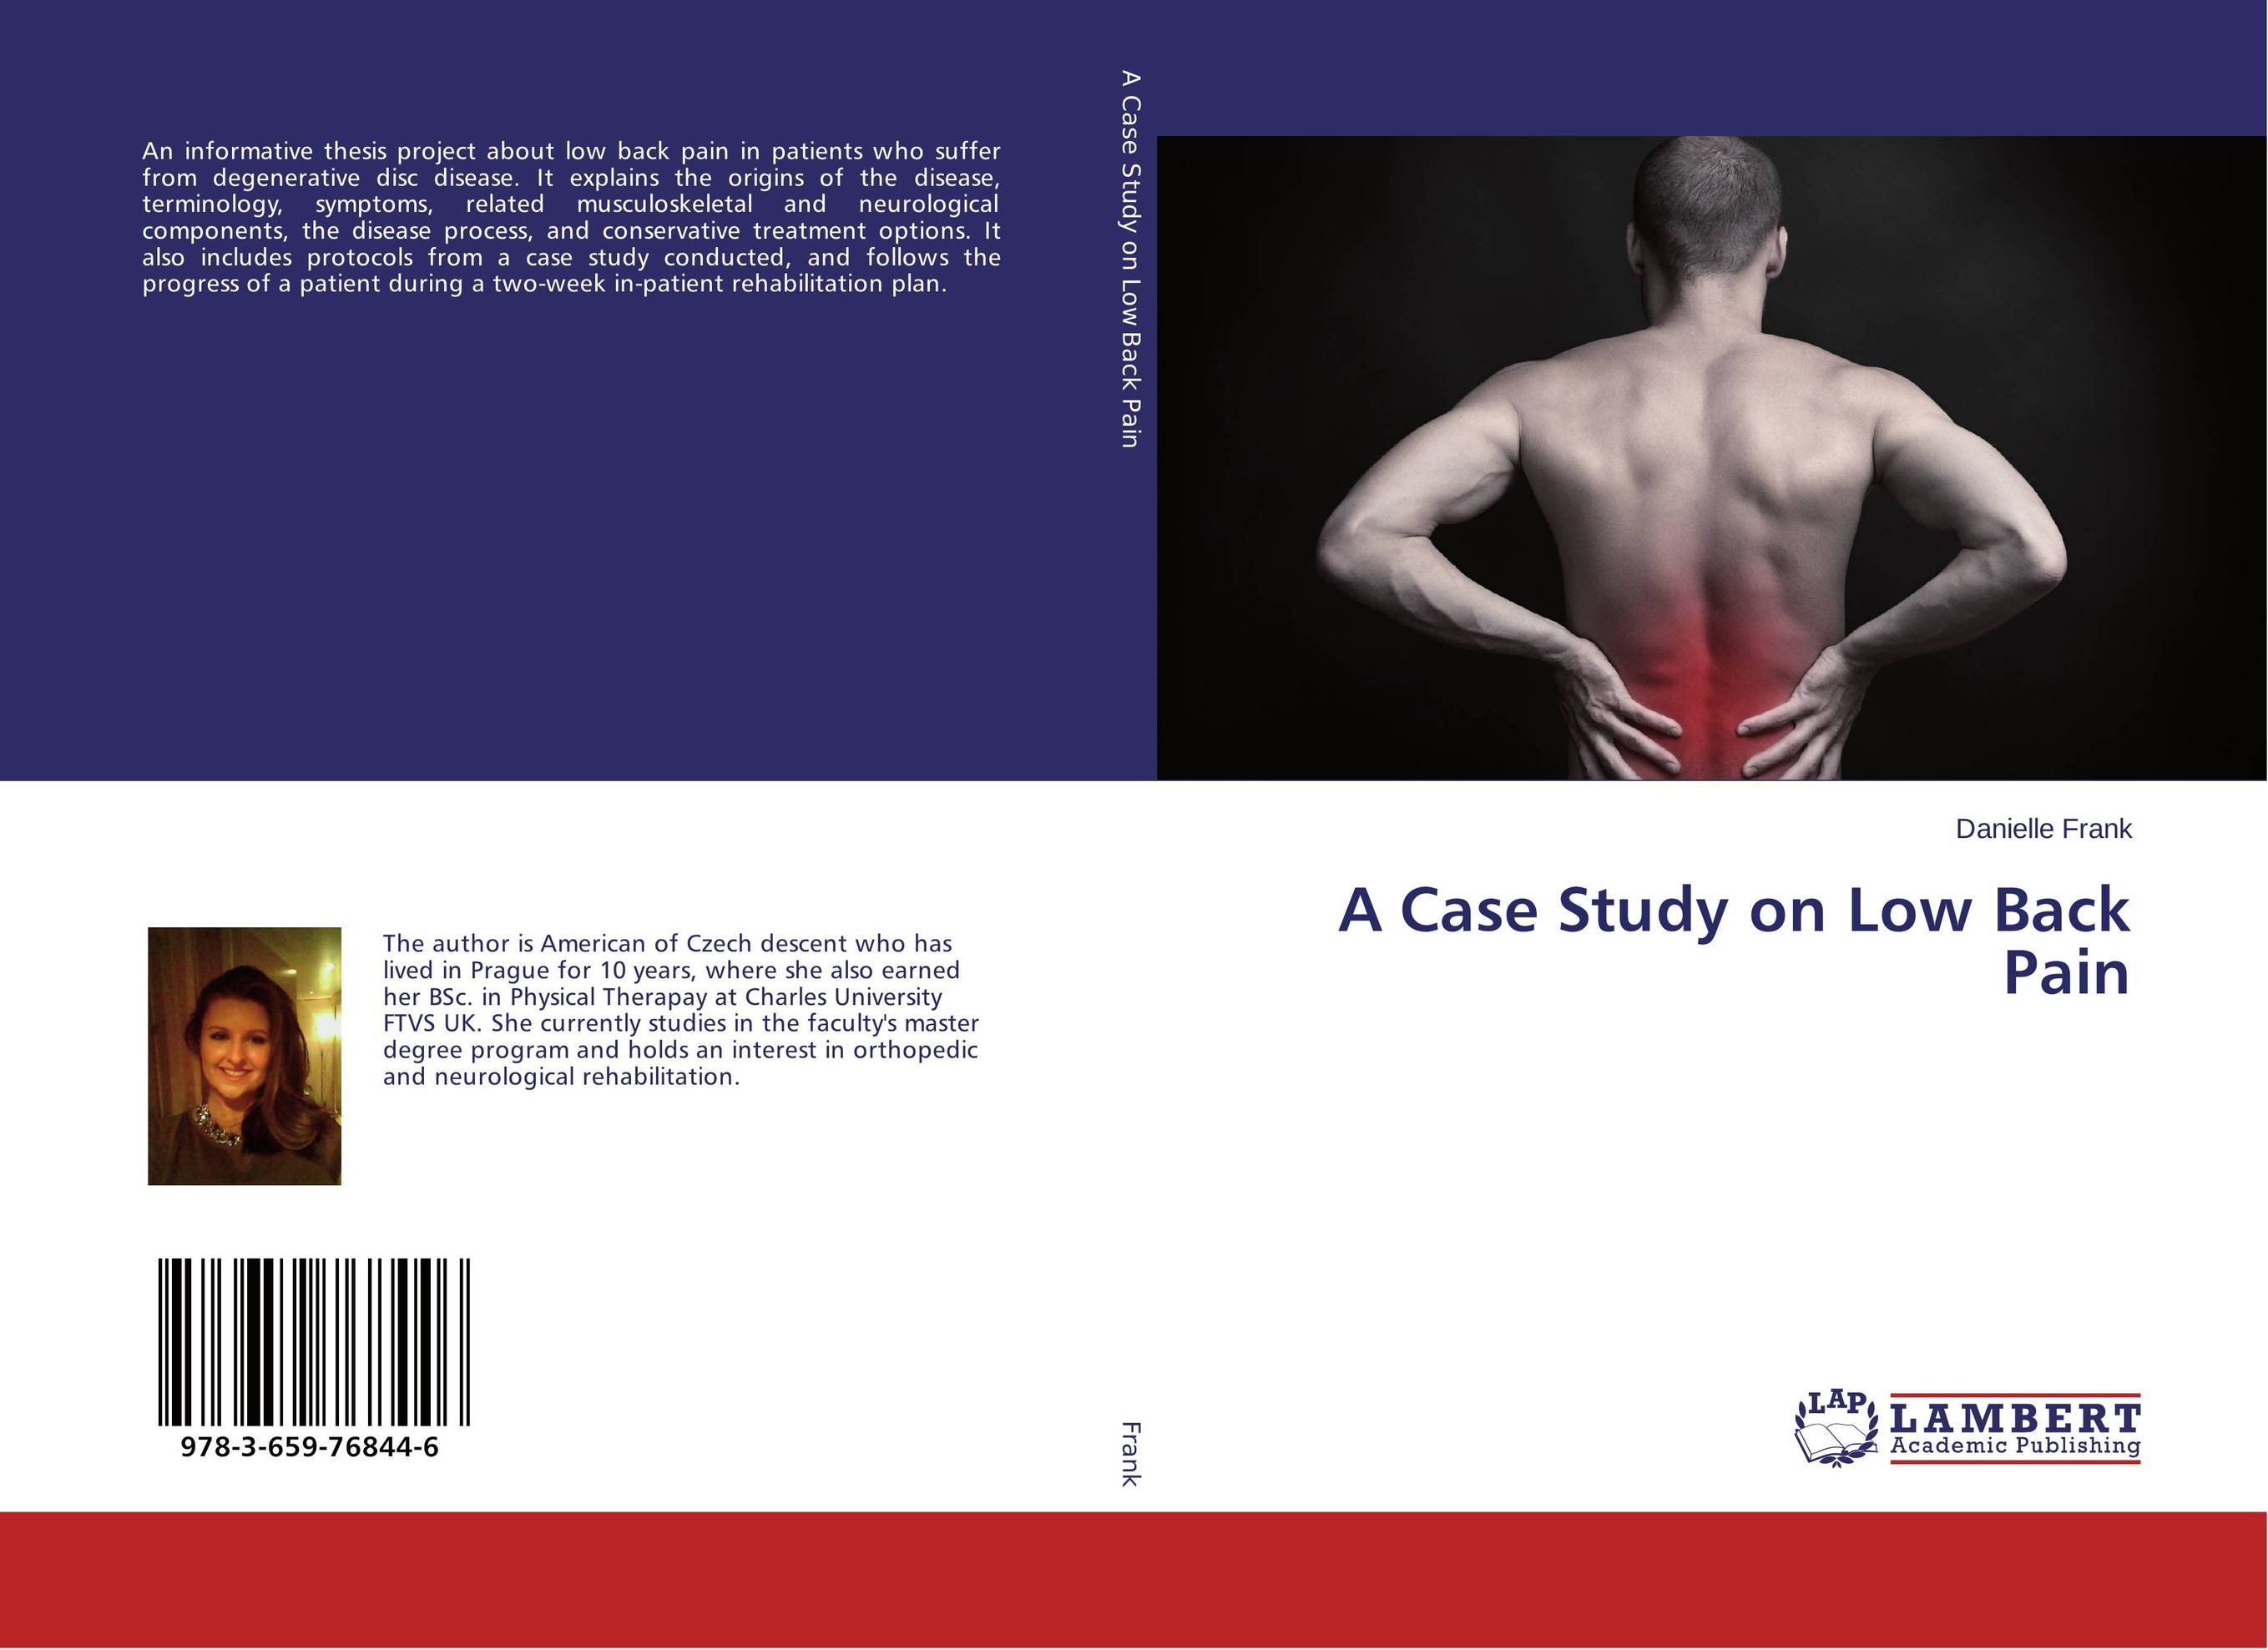 A Case Study on Low Back Pain